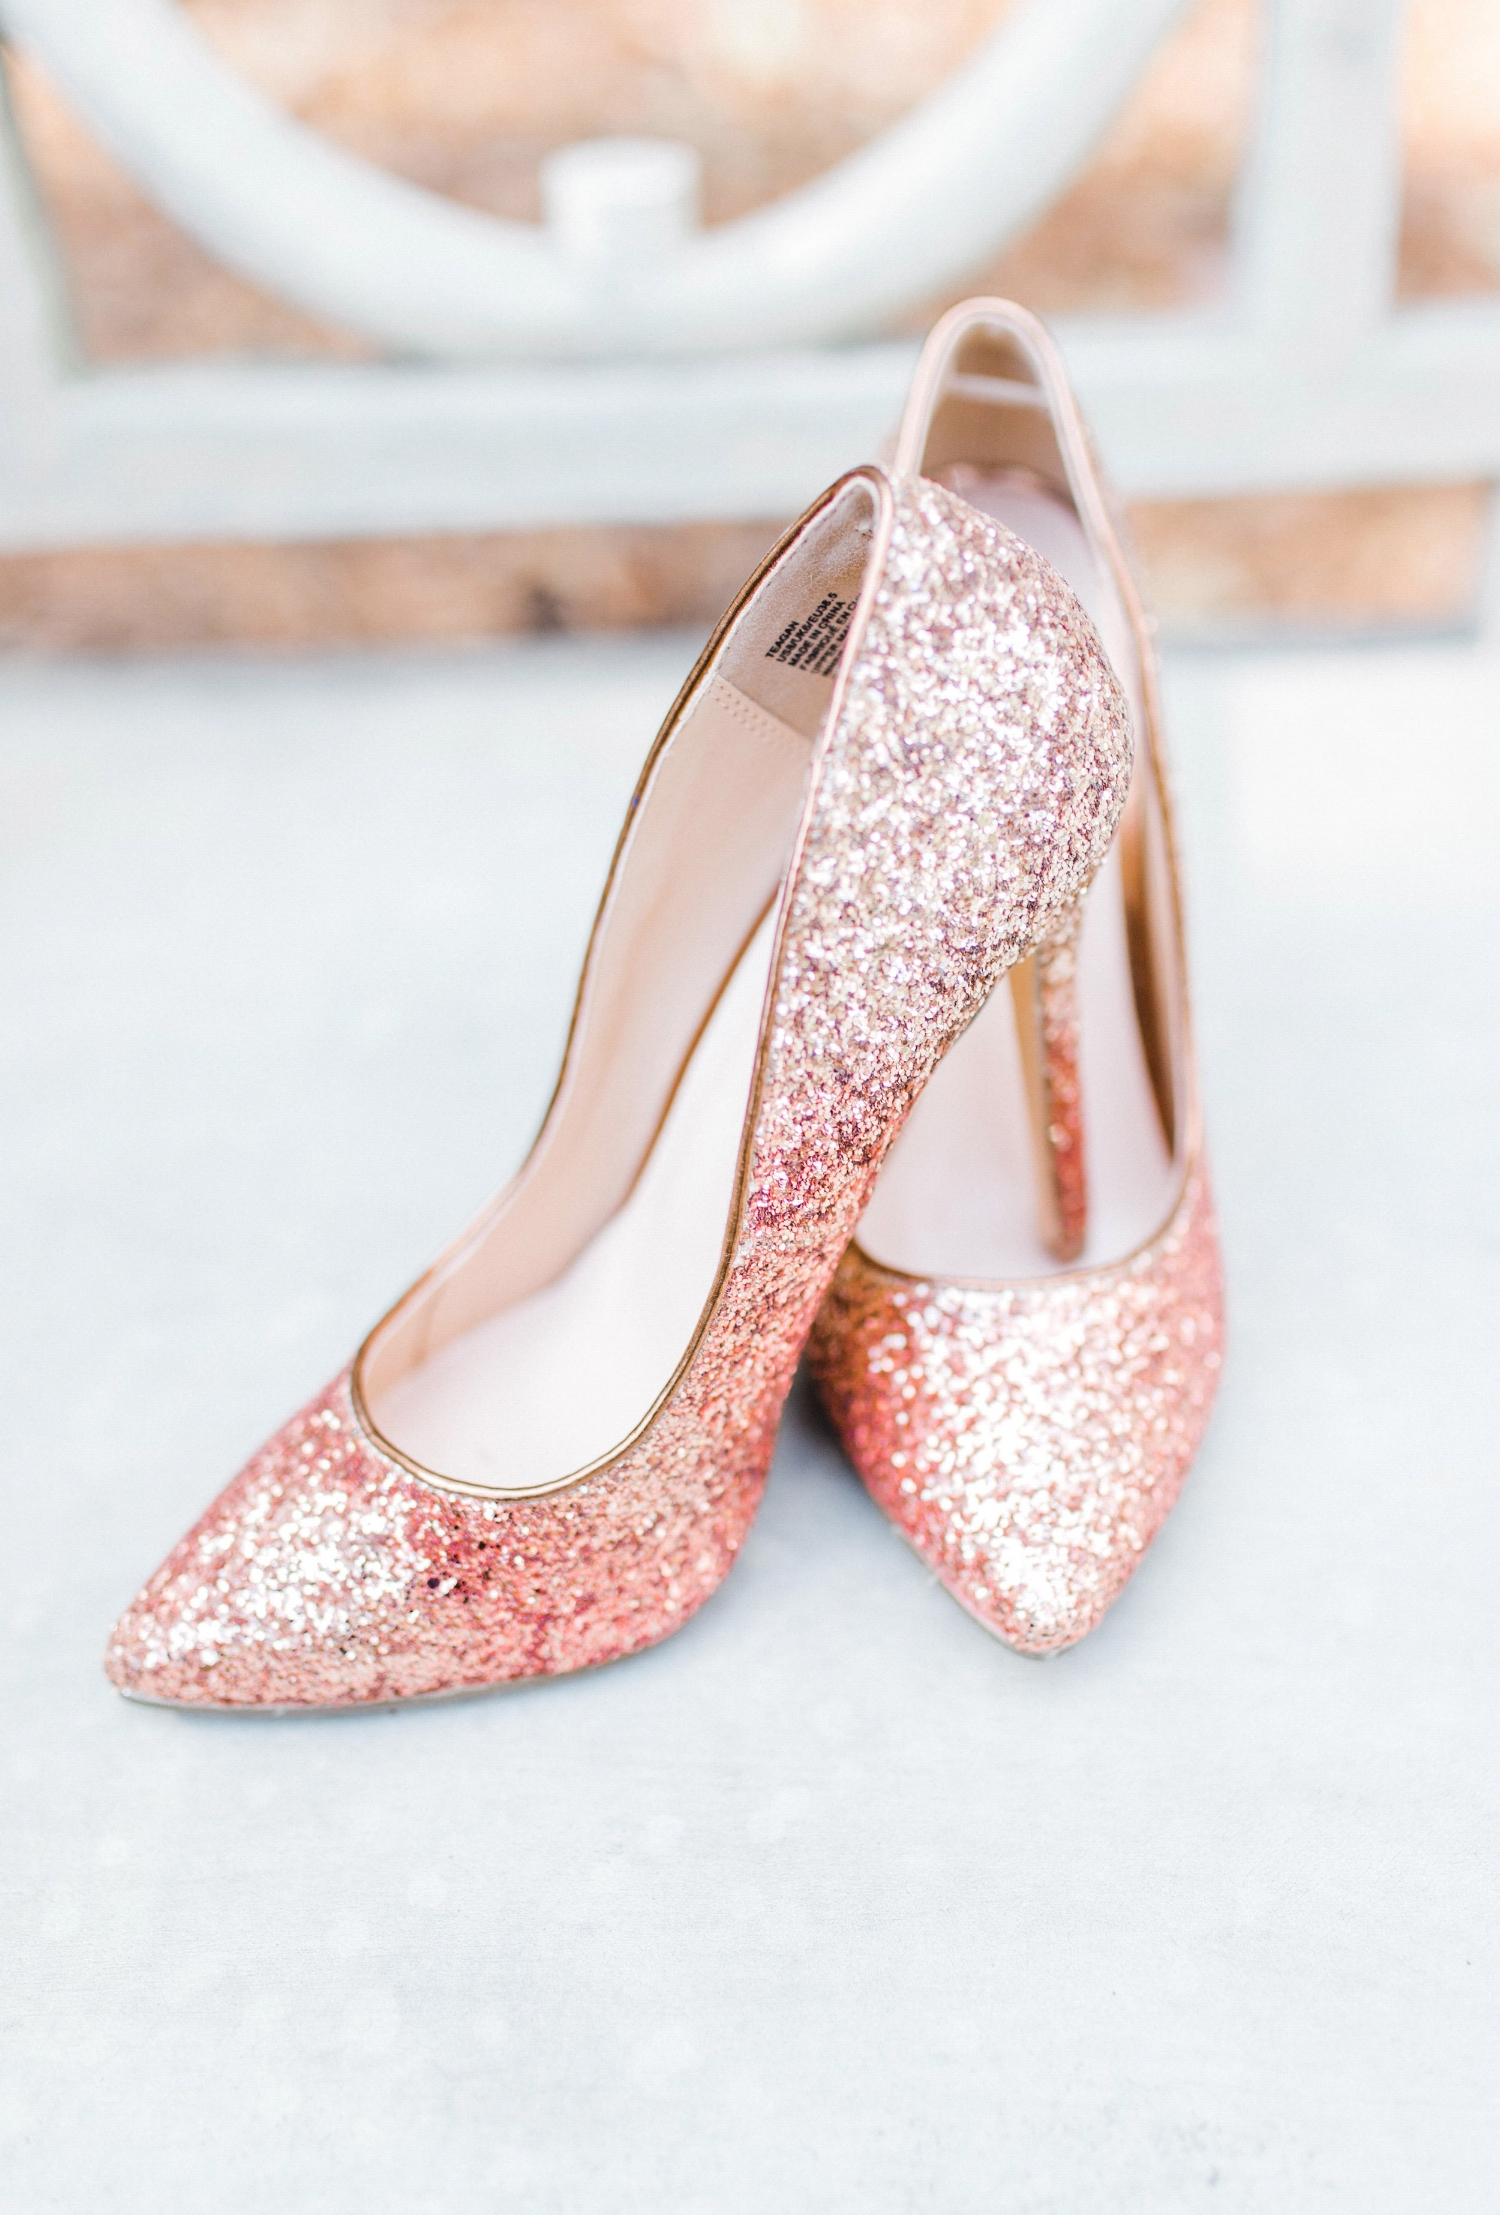 Rose-Gold-Glitter-Shoes-Tierney-Riggs-Photography